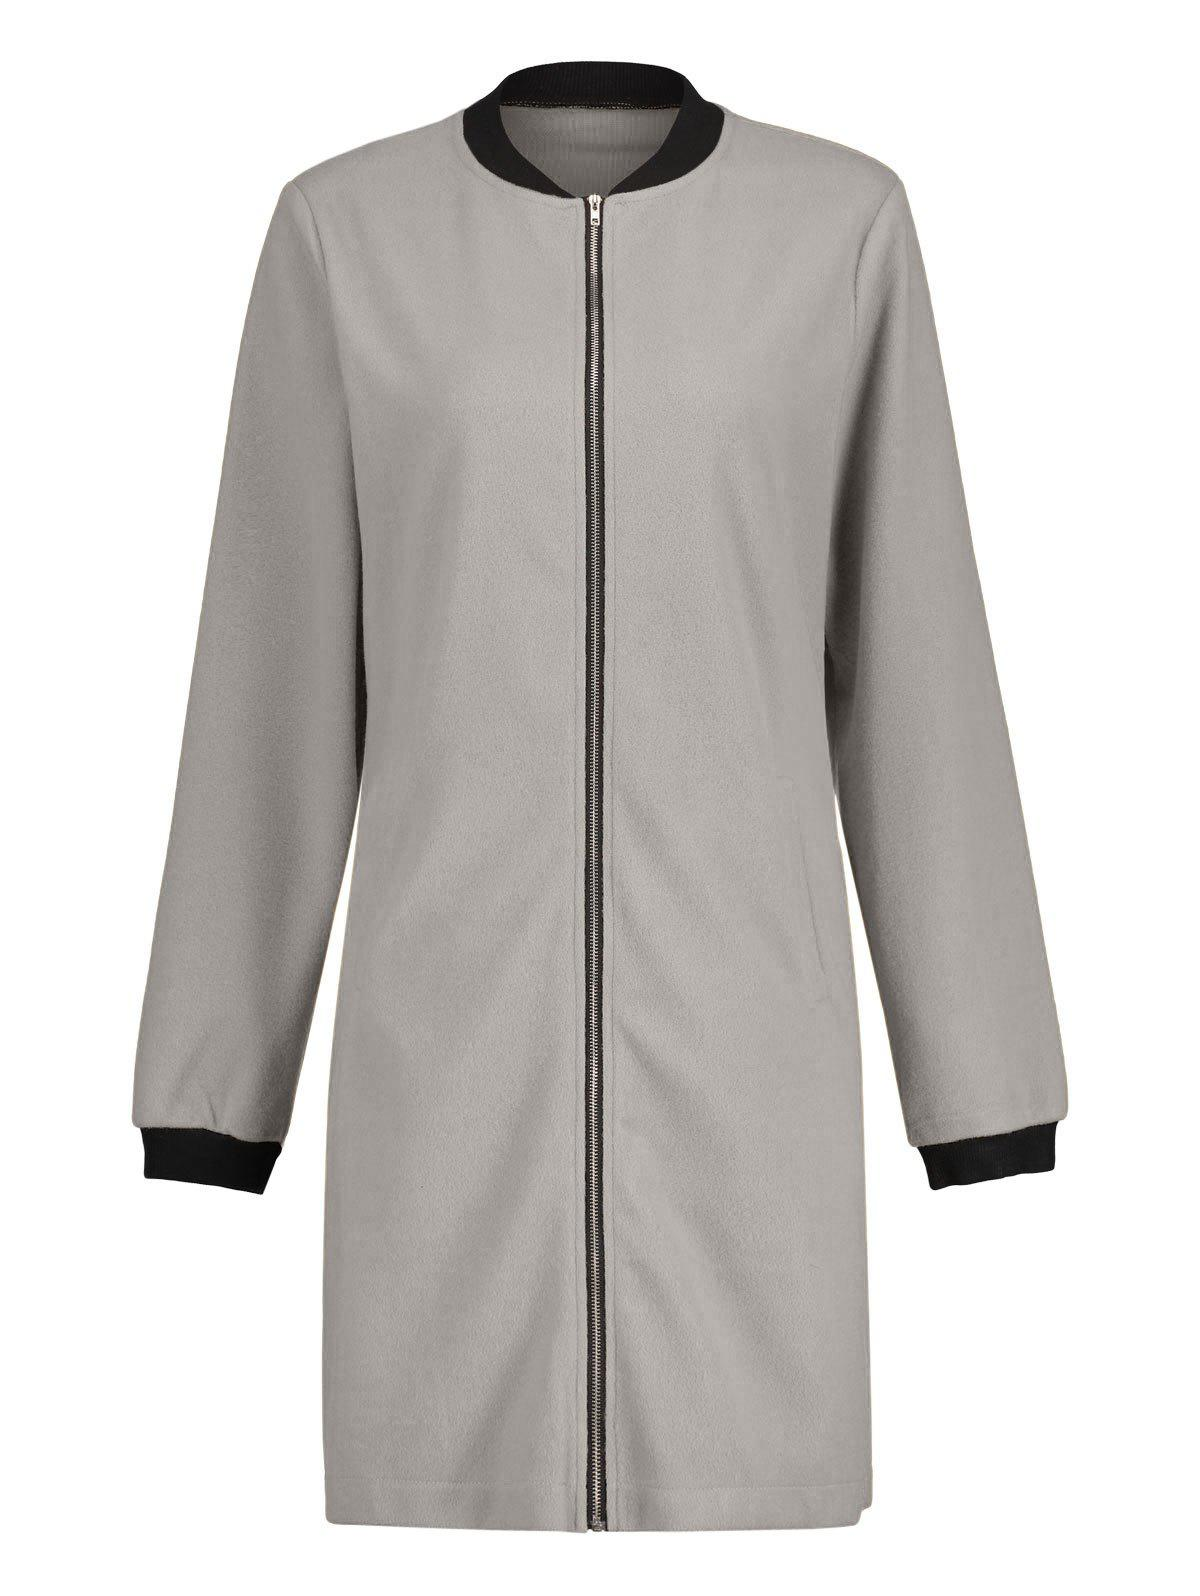 Long Zip Up Coat - gris L